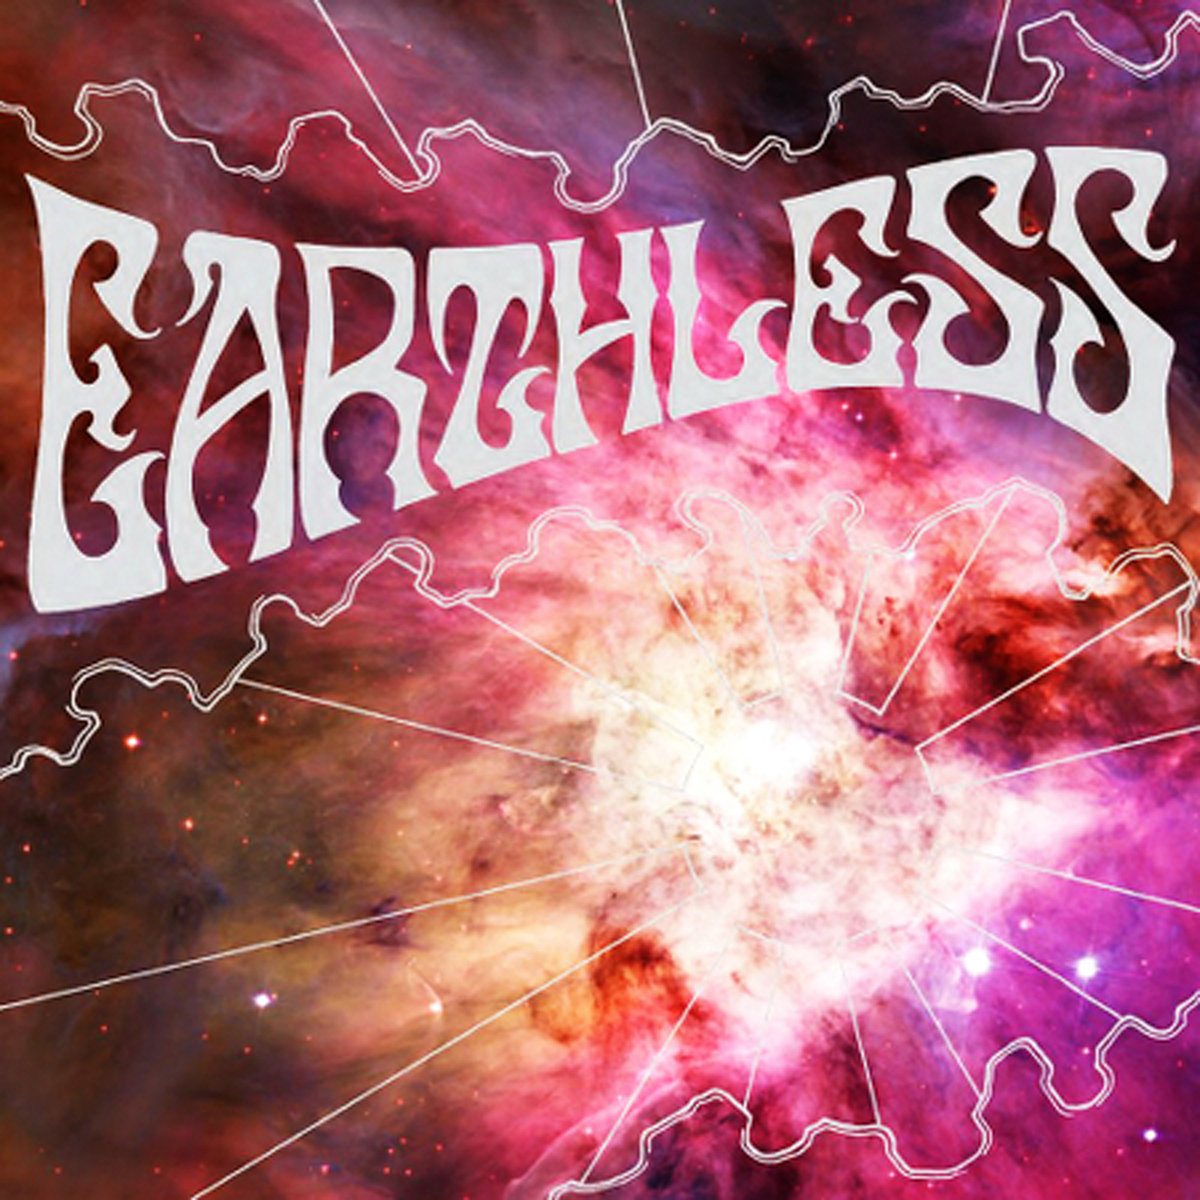 Earthless interview with Isaiah Mitchell - It's Psychedelic Baby